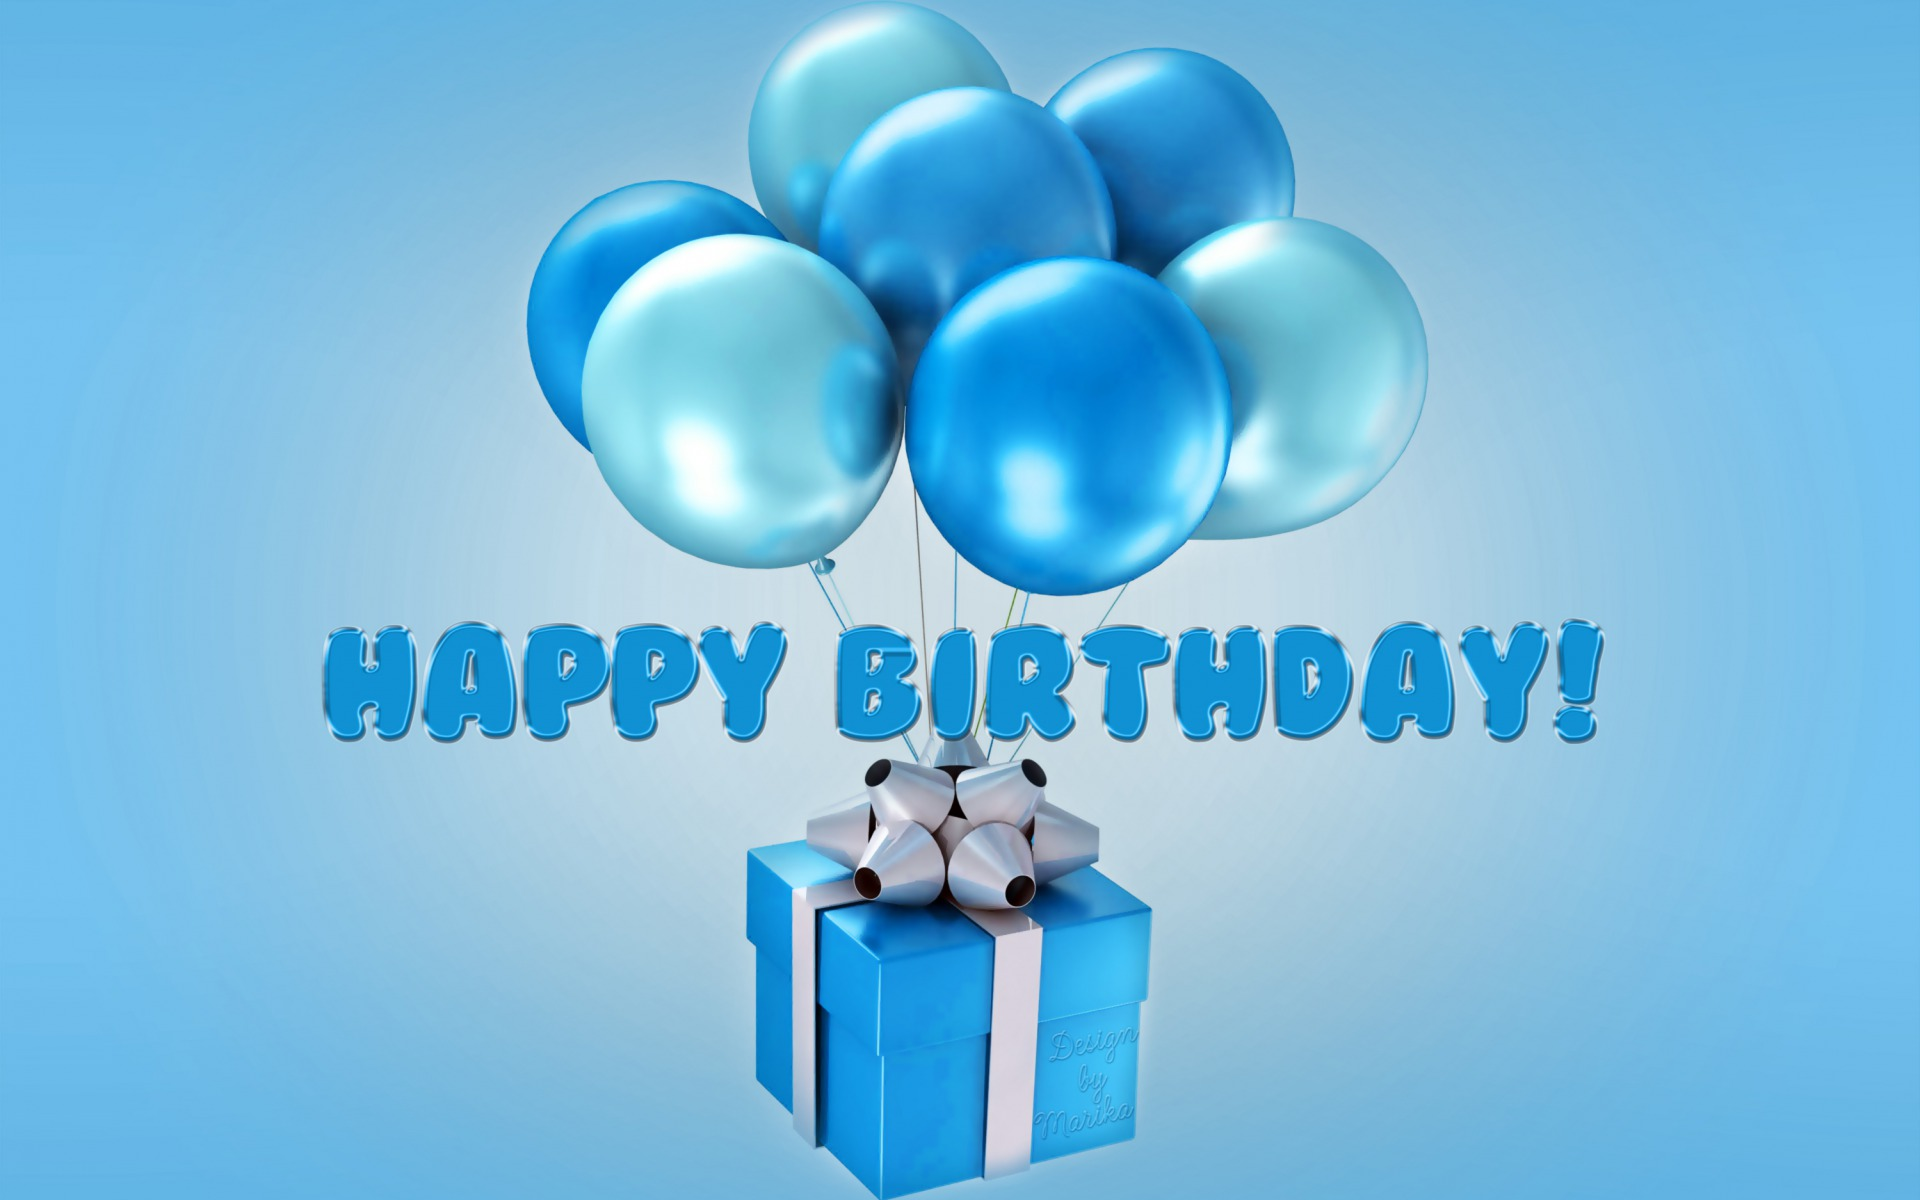 birthday wallpaper images ; Happy-Birthday-Wallpaper-HD-Images-Pictures